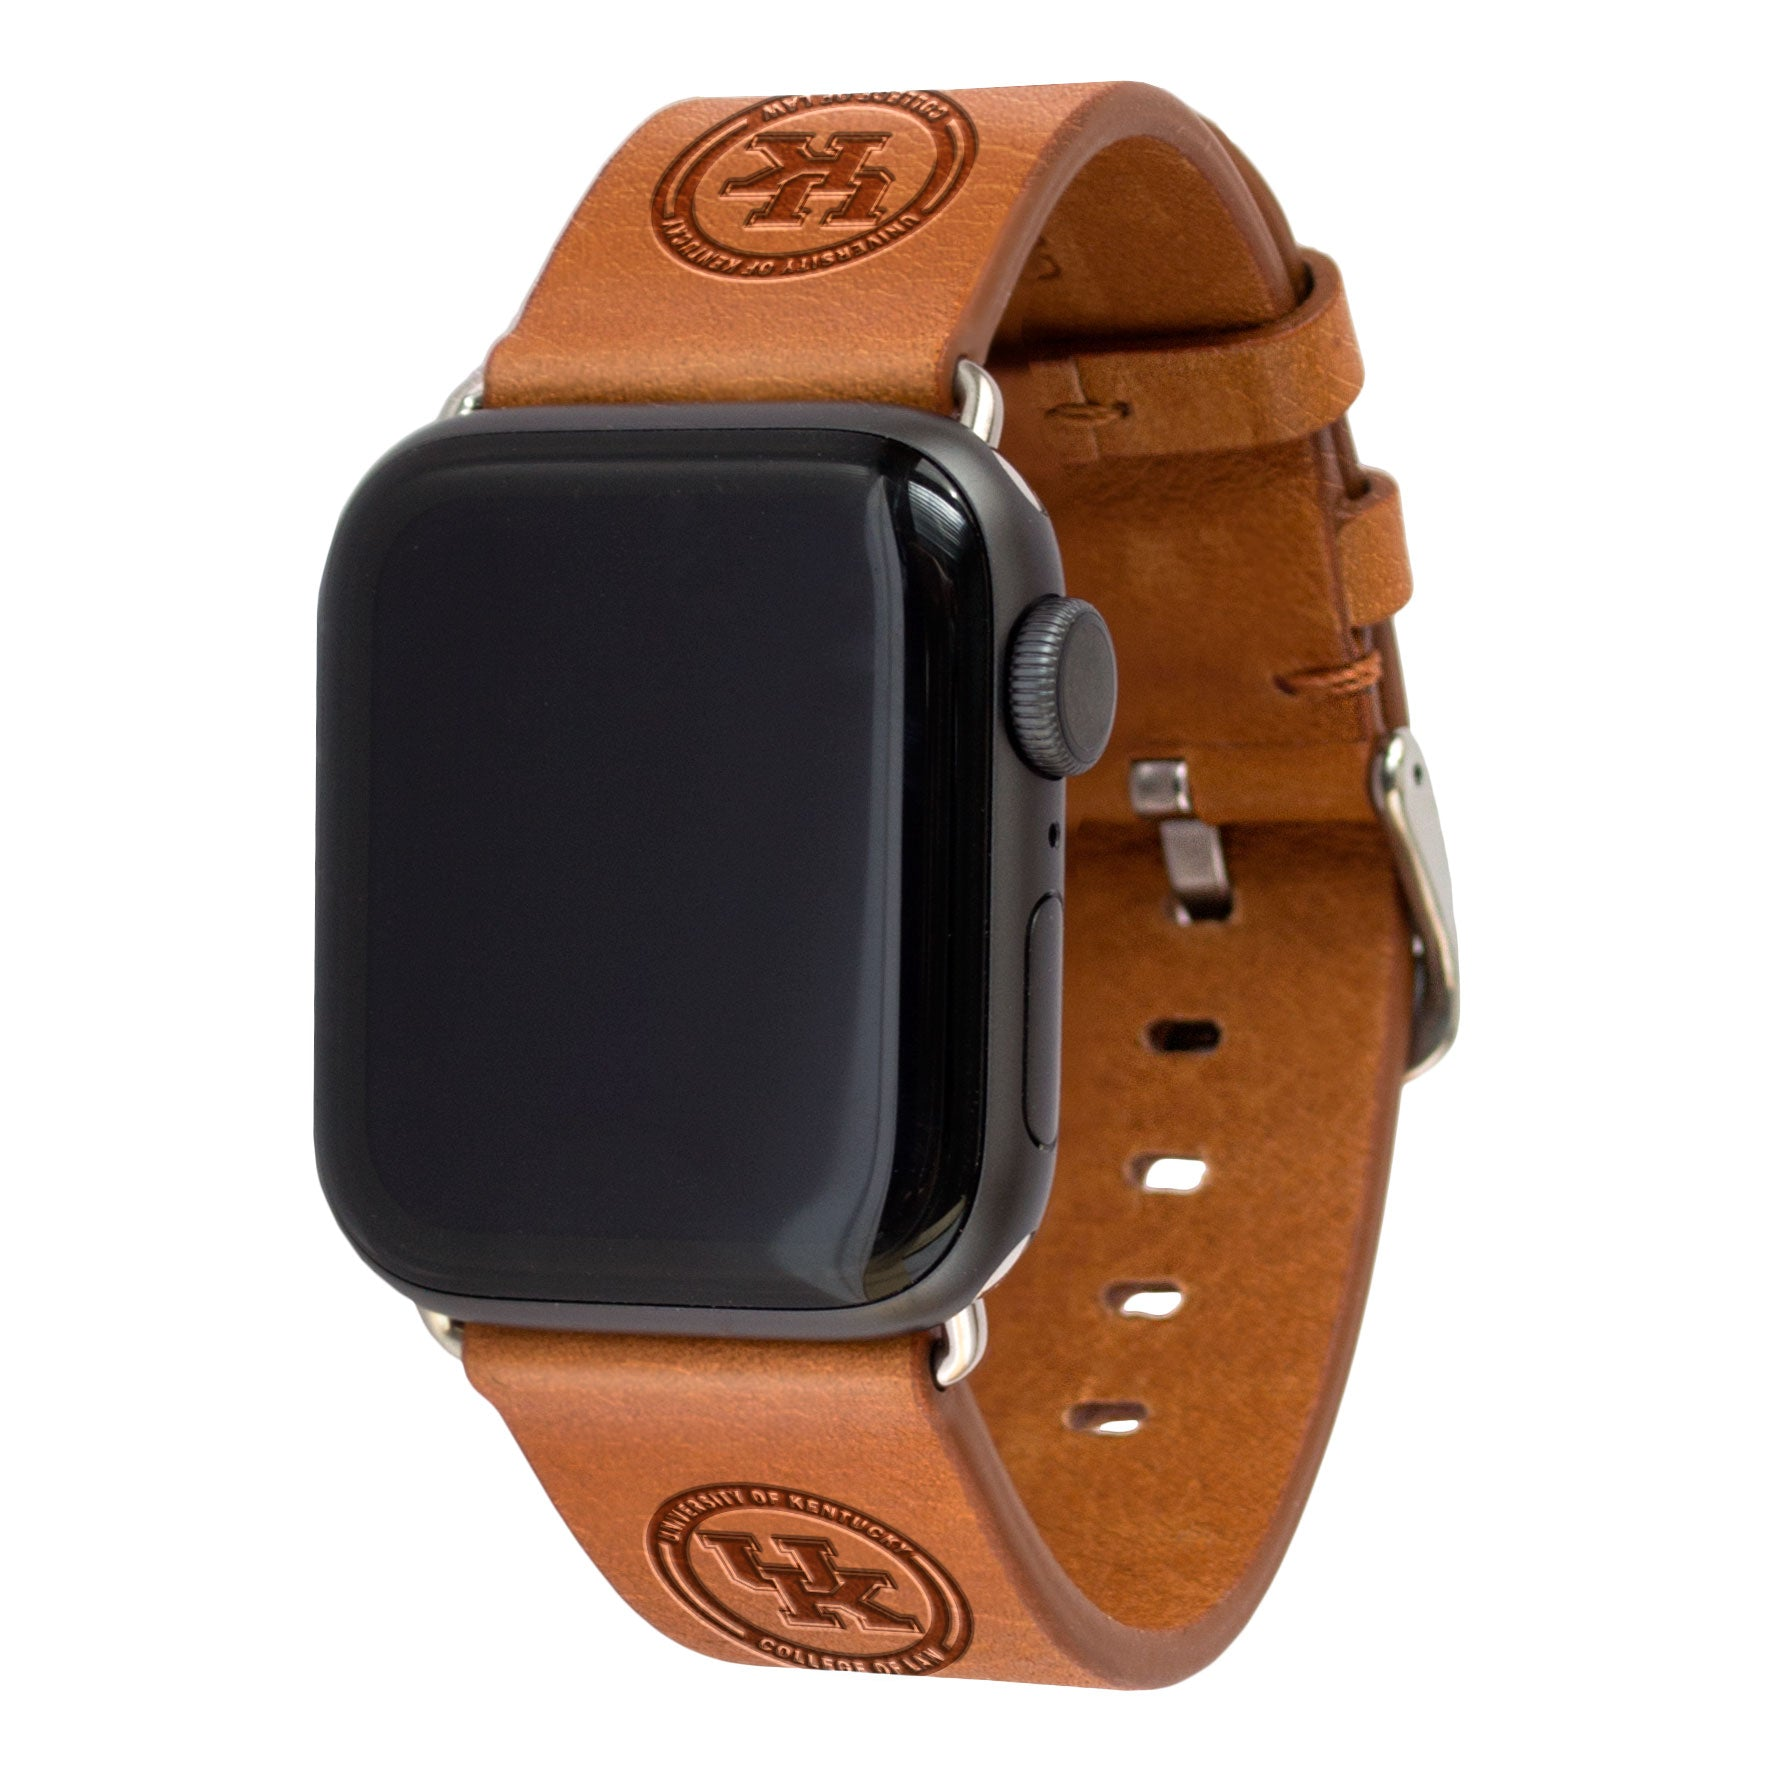 UK College of Law Leather Apple Watch Band